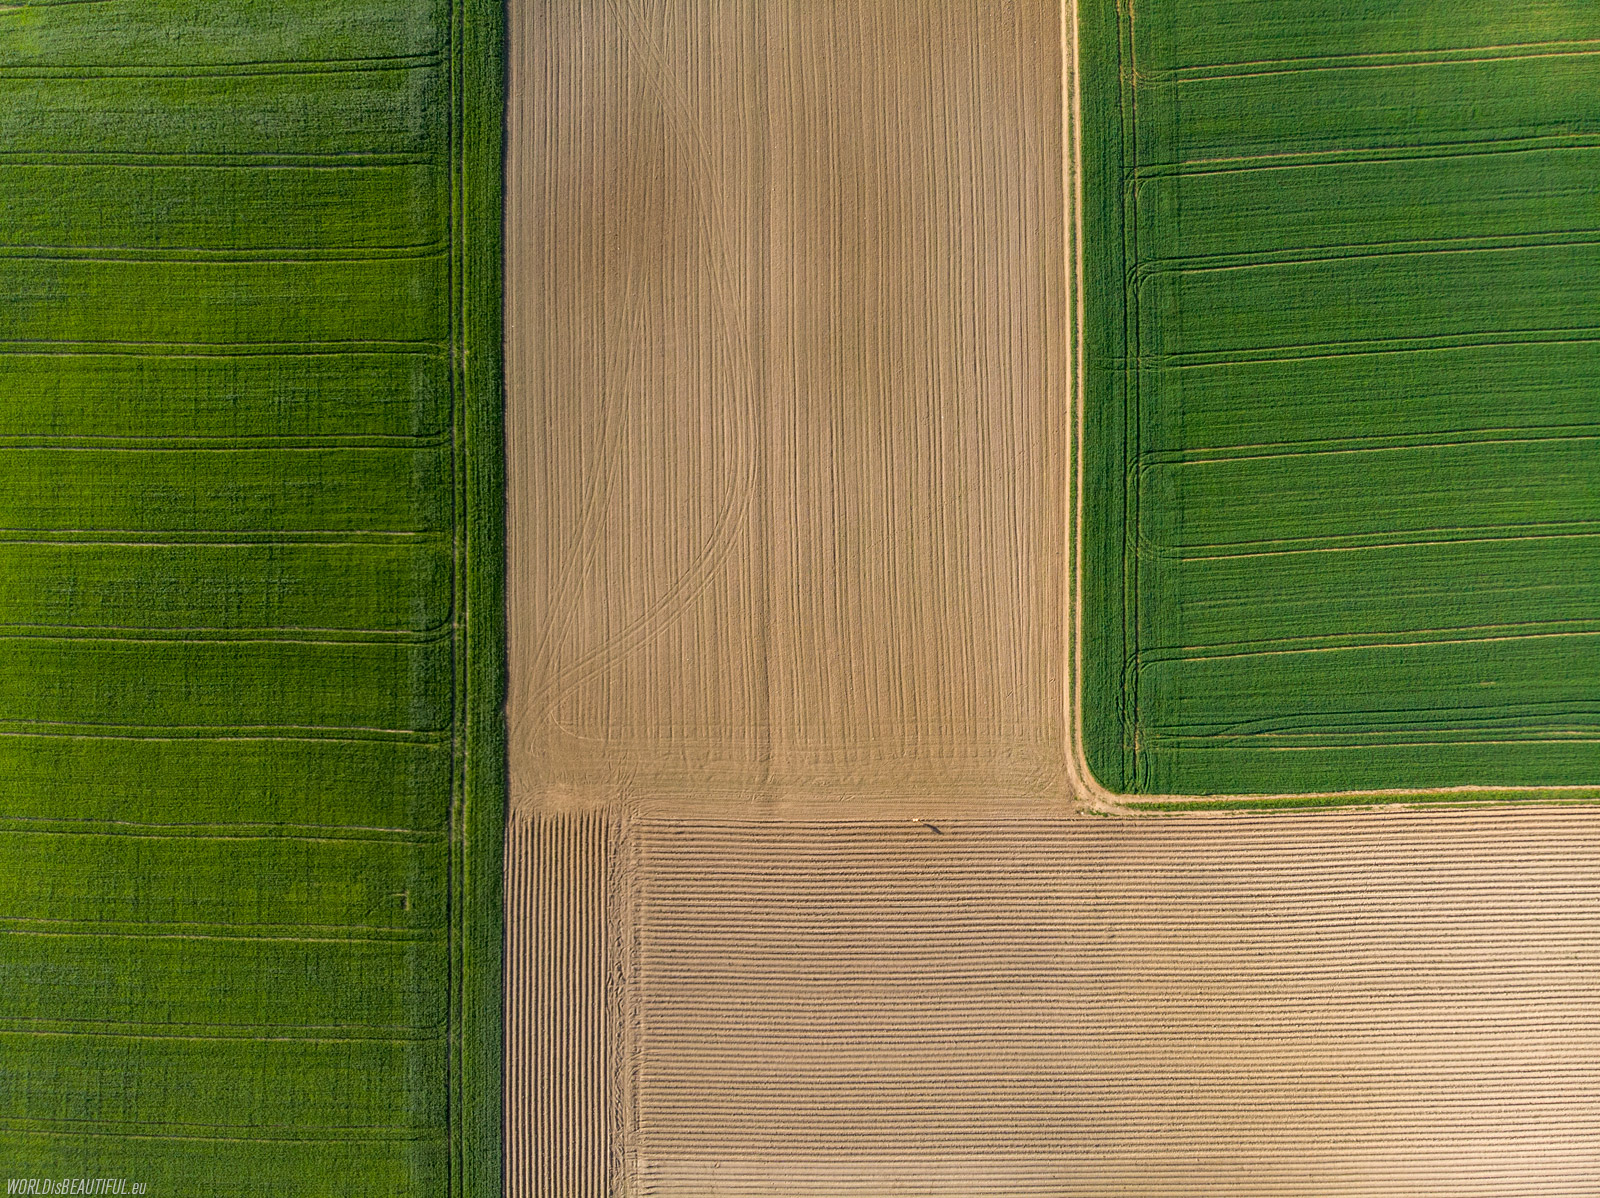 Drone abstractions